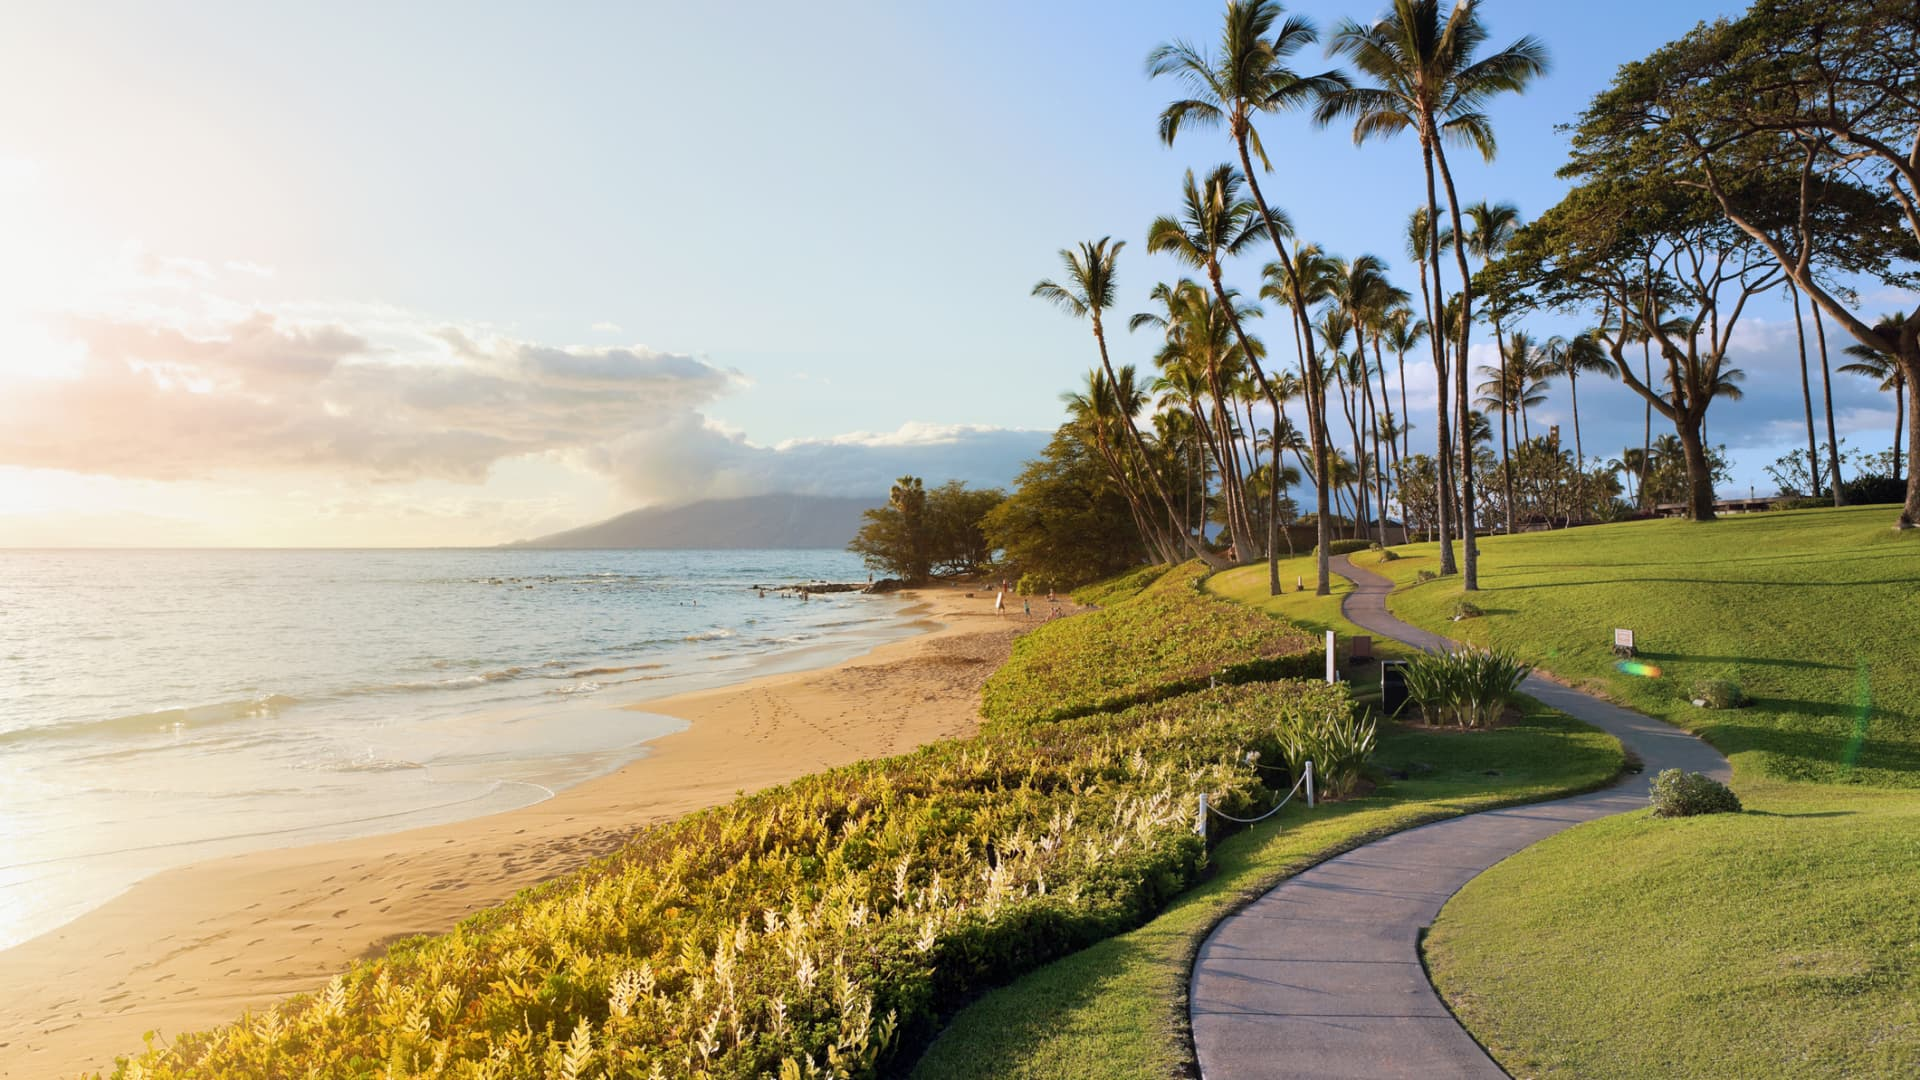 California, the Caribbean and other warm weather locations are popular for Christmas travel this year, however Hawaii is the most in-demand destination for American travelers, according to Similarweb.